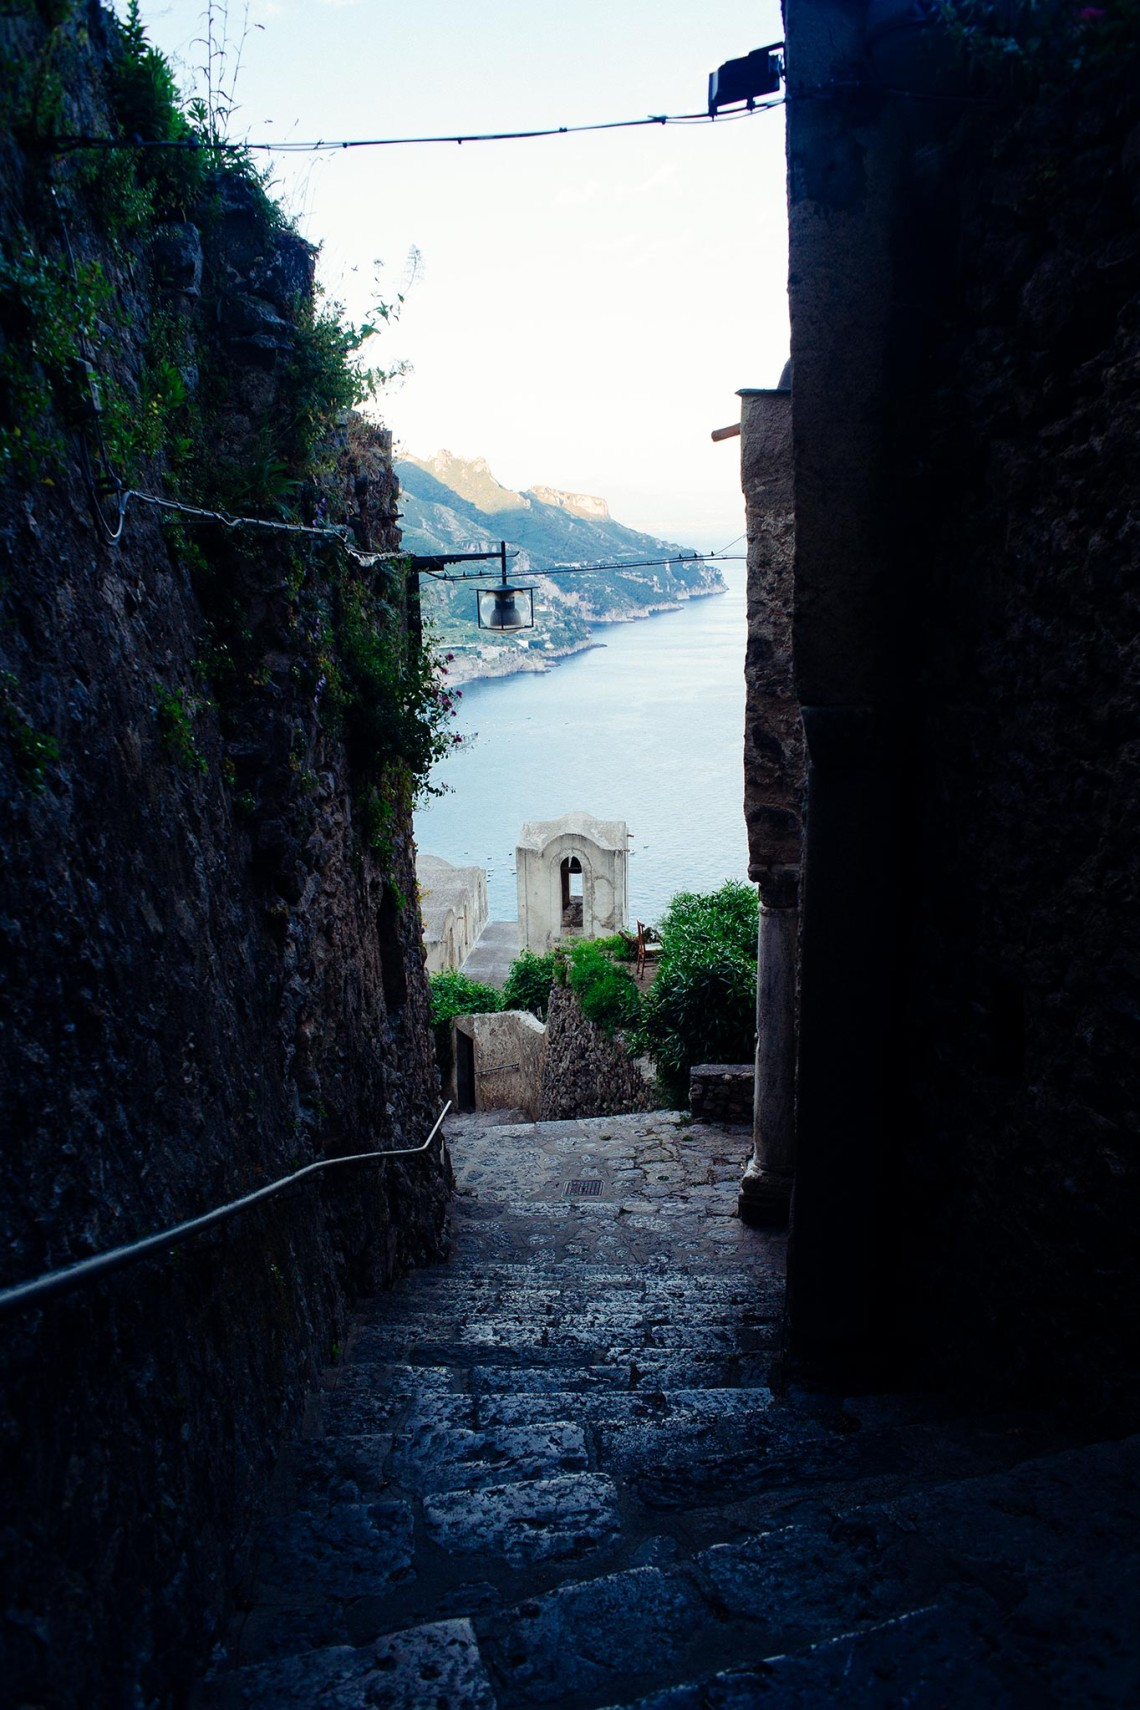 Ravello, Amalfi, Italy - June 2015